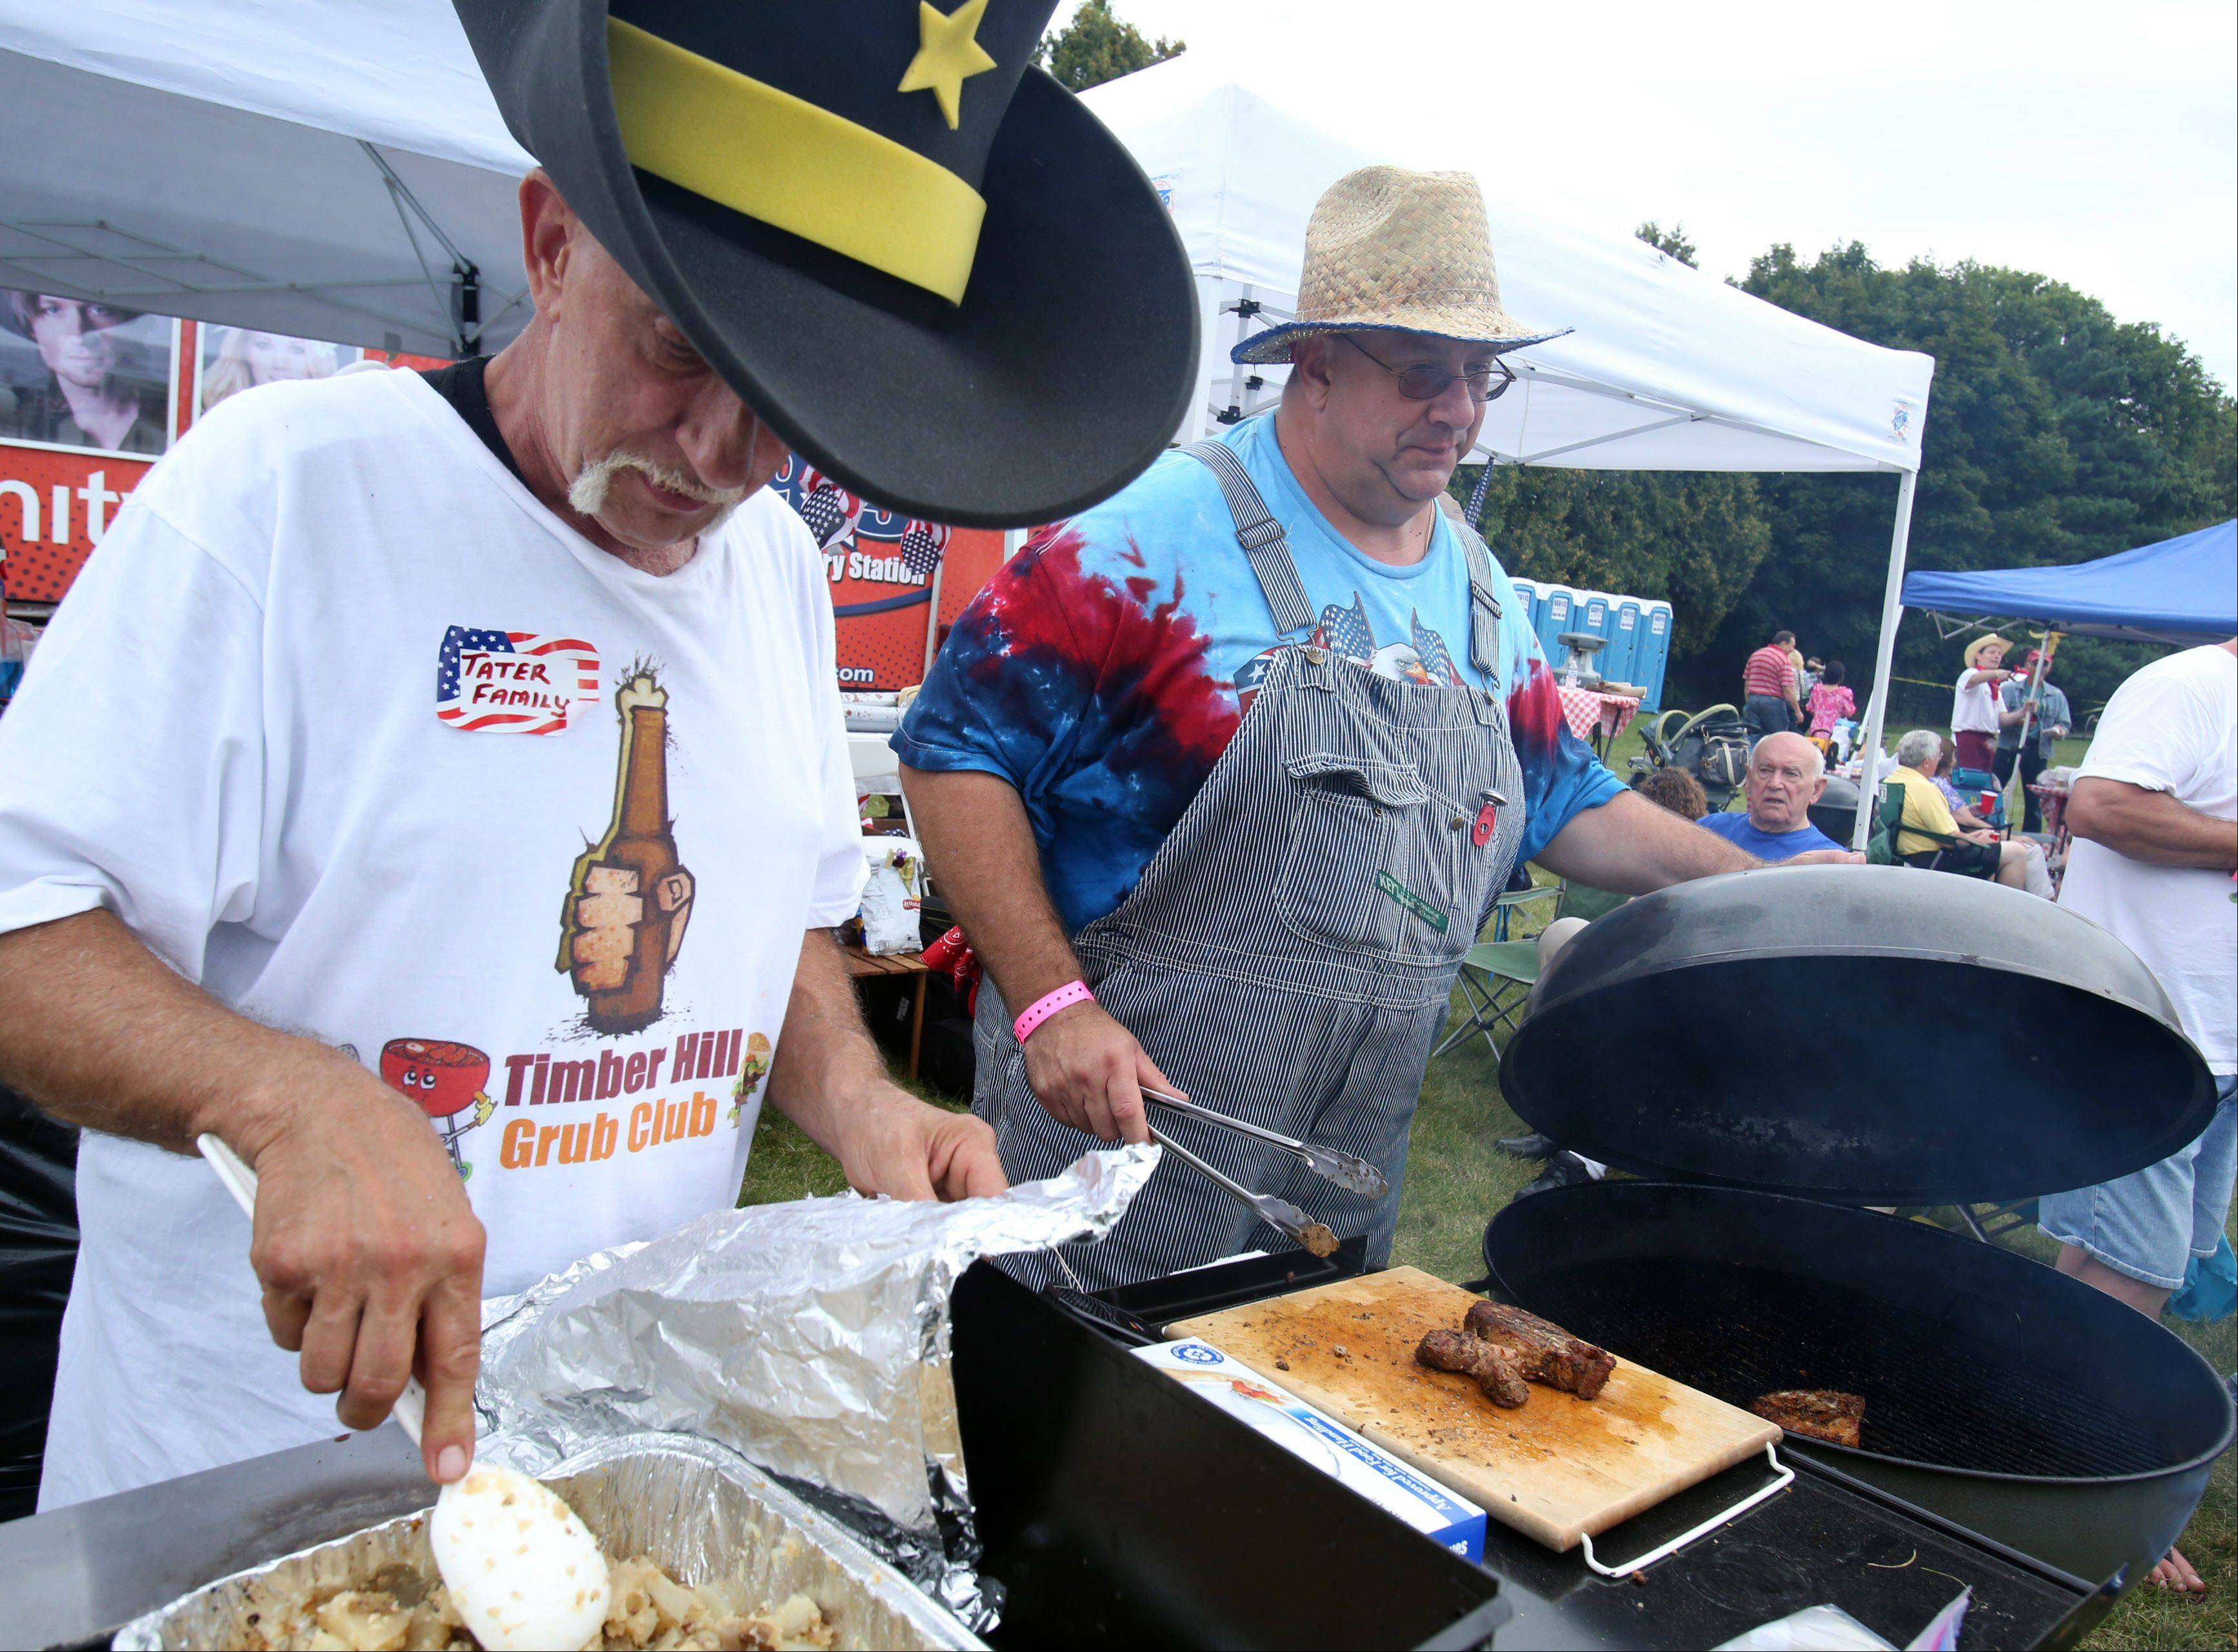 Members of the Timber Hillbillies team including leader John Kirby, of Buffalo Grove, left, and John Klbecka, right, grill in the BBQ cookoff during Buffalo Grove Days Saturday in Buffalo Grove.